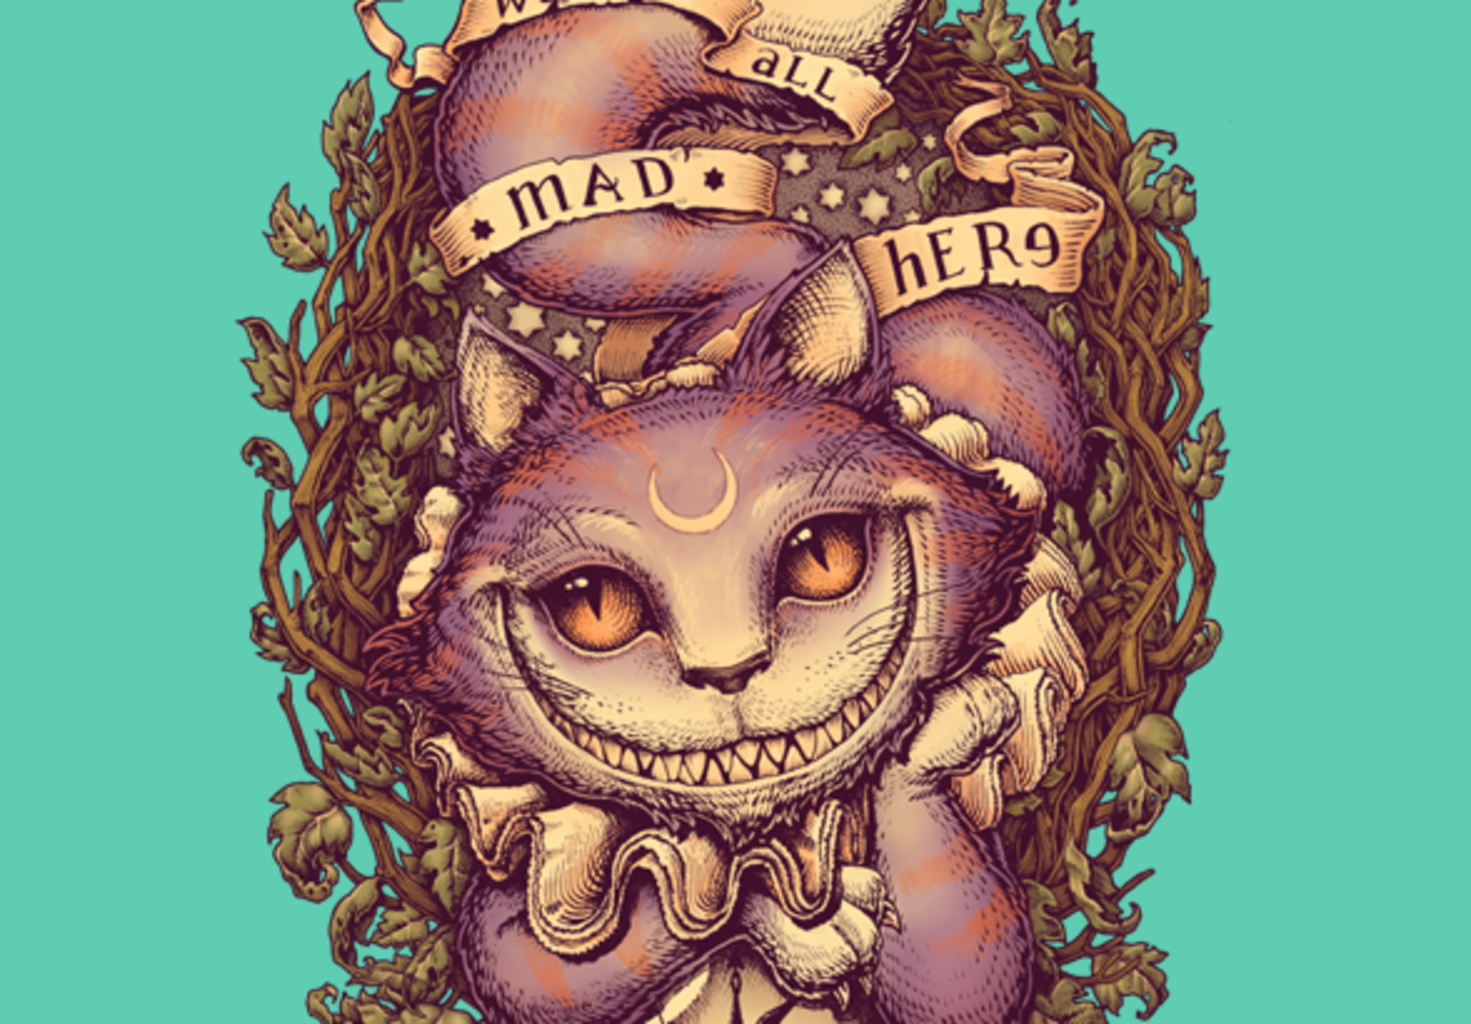 teeVillain: We Are All Mad Here